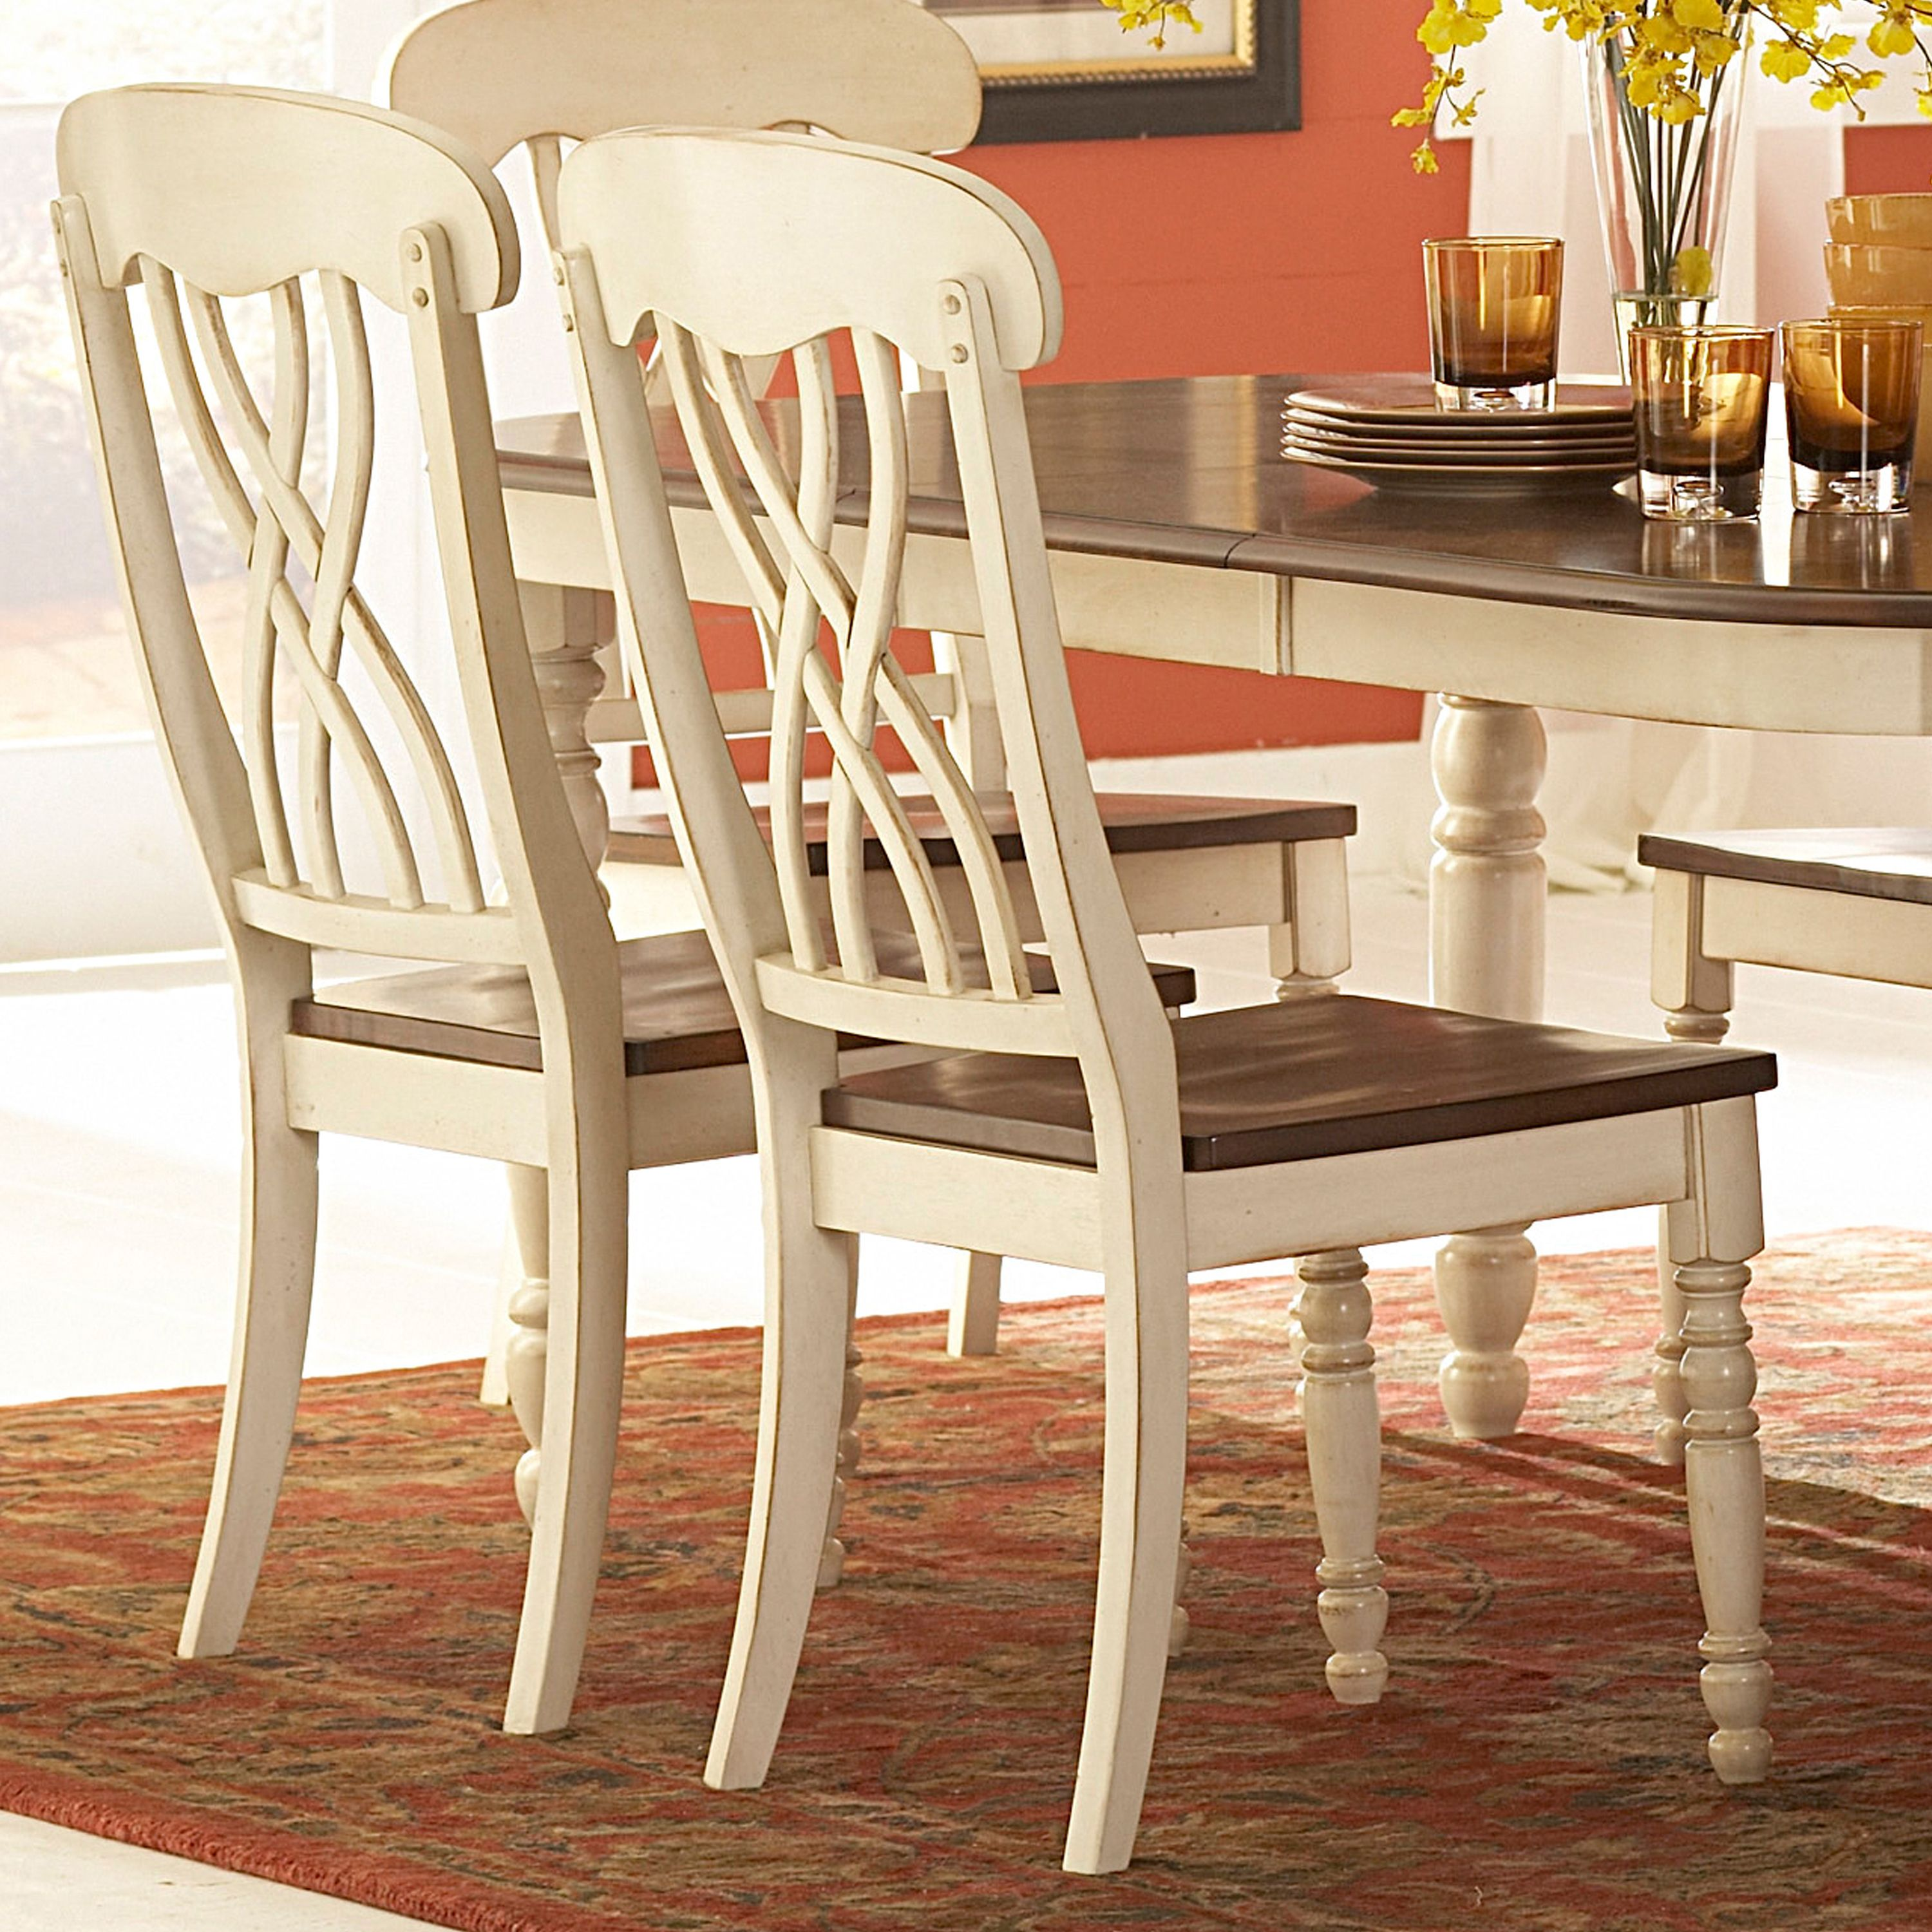 This charming set of chairs would make a lovely addition to the country style  furniture in your home. Crafted of solid hardwood with a two-toned  buttercream ...